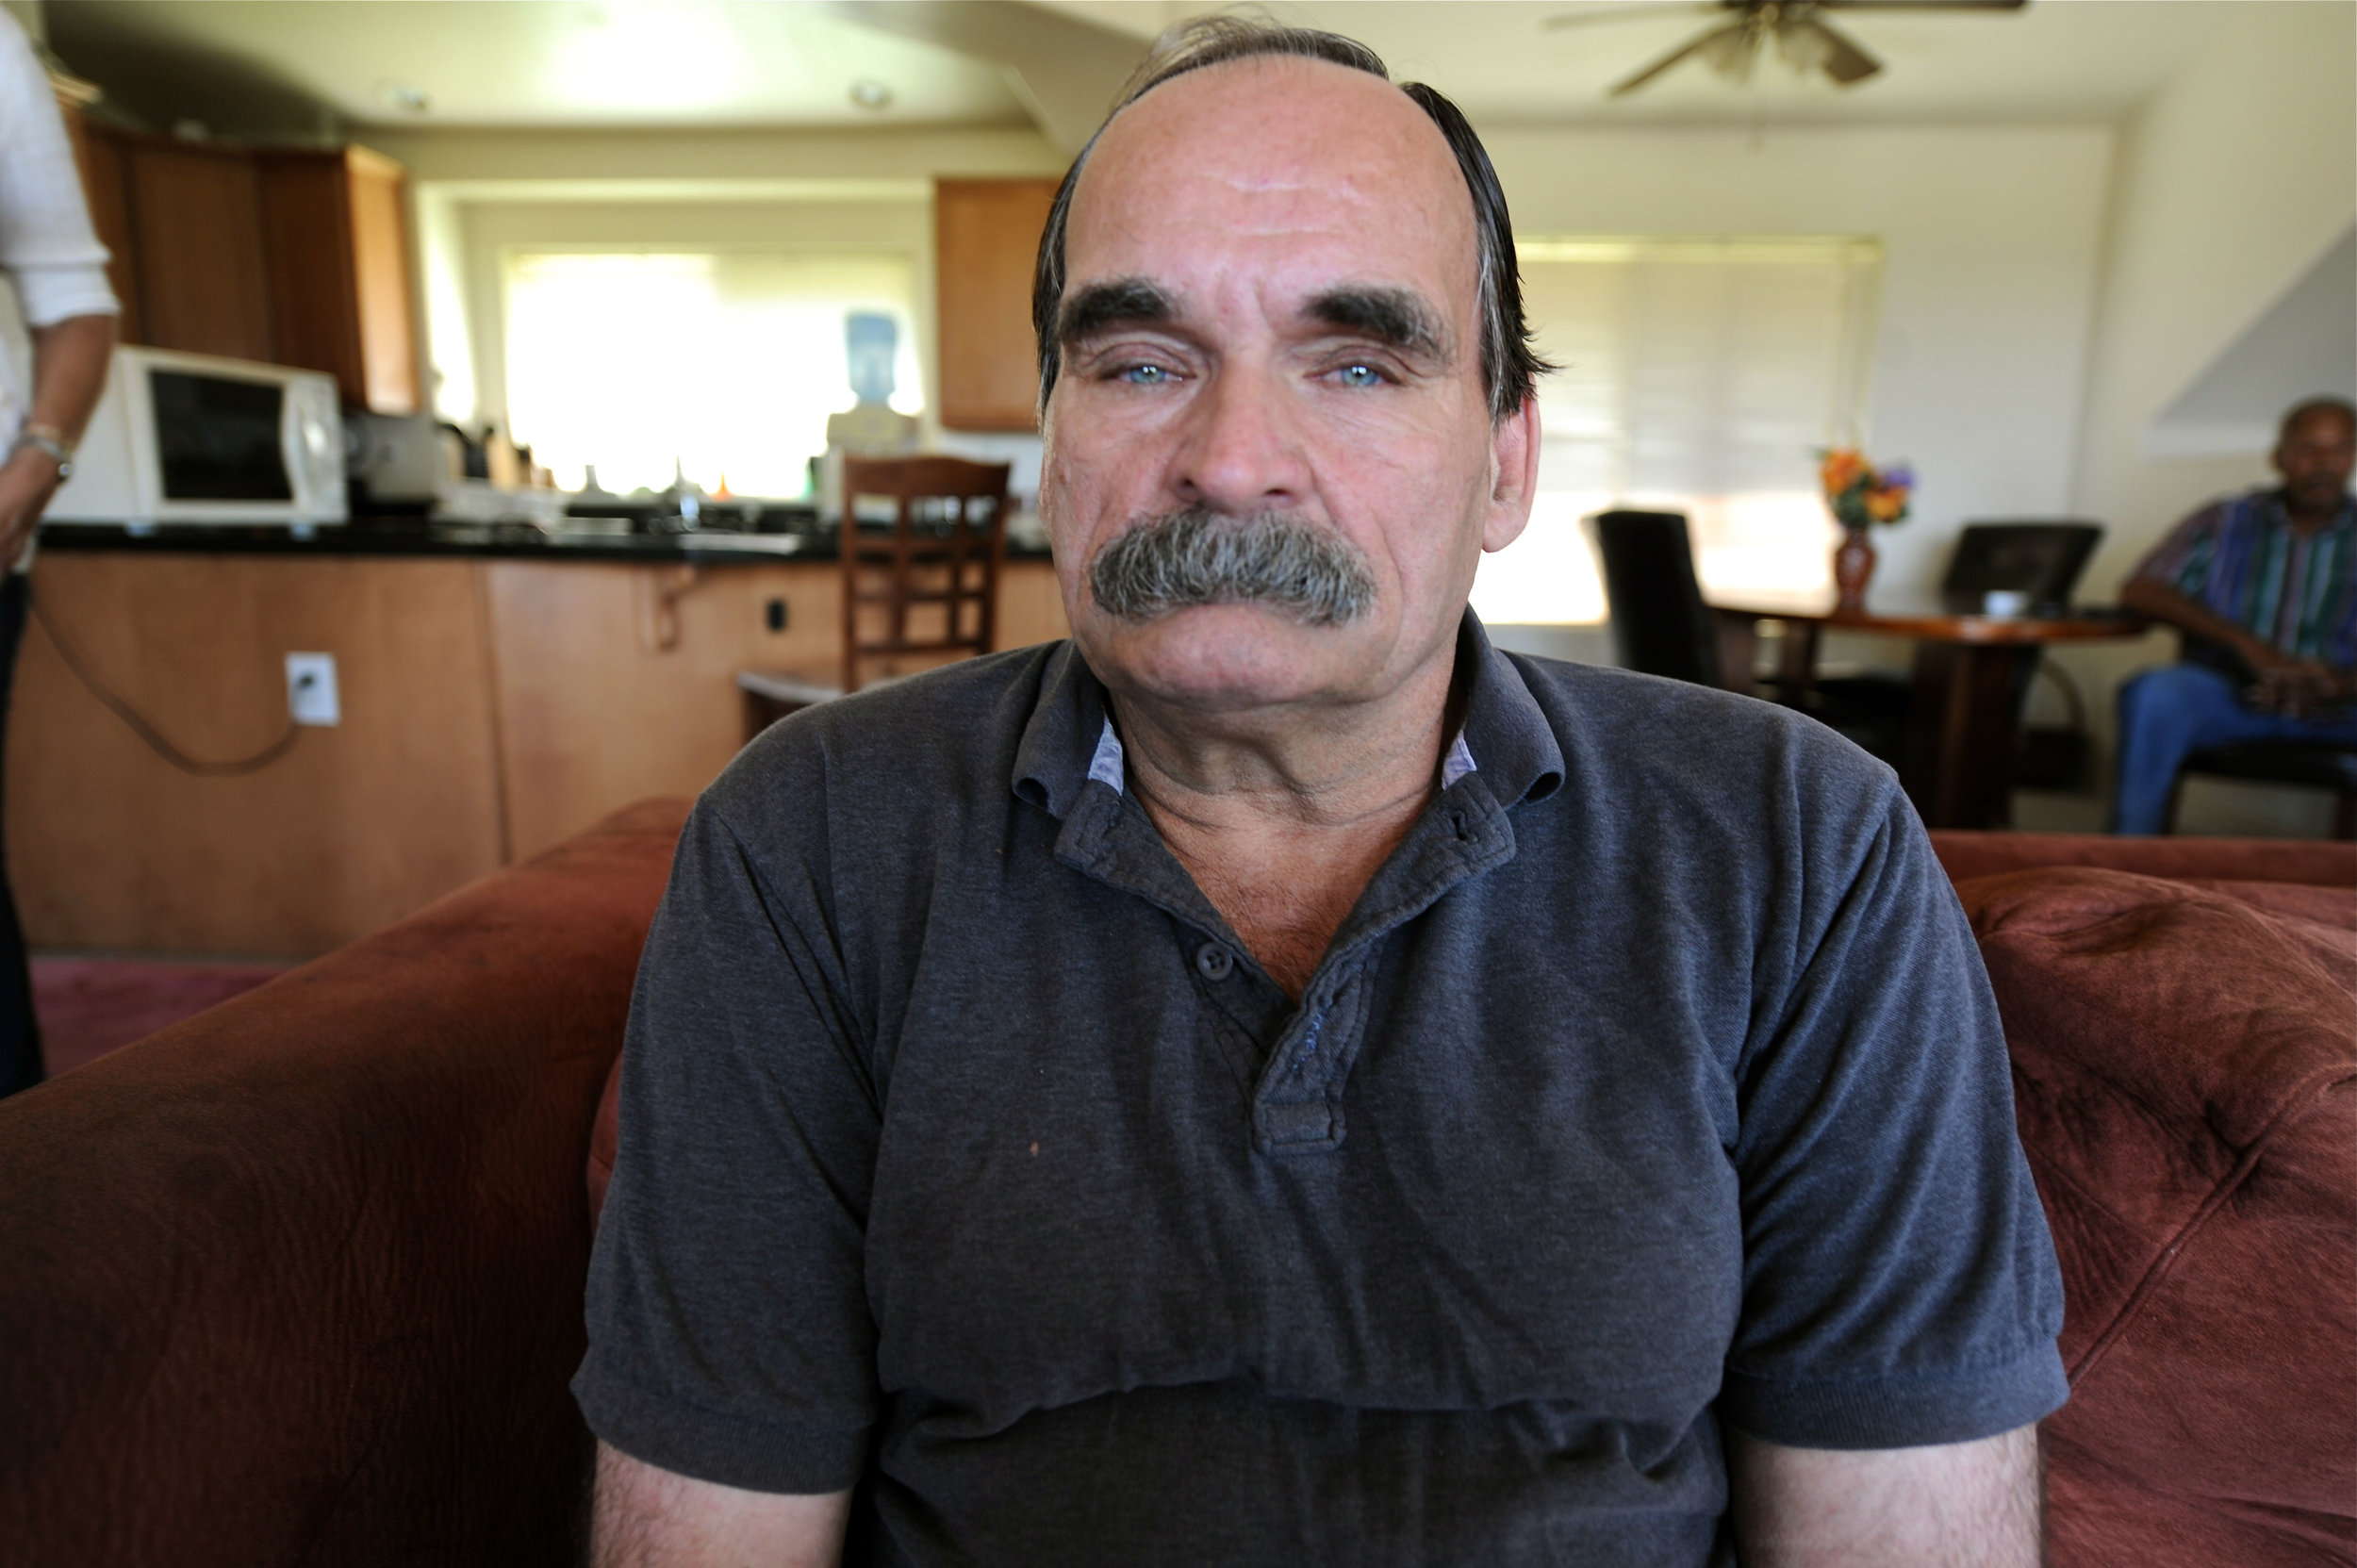 Huckabay, 61, was last convicted for drug possession. He expects to be  off probation in November.   -Sadaf Syed for Al Jazeera America